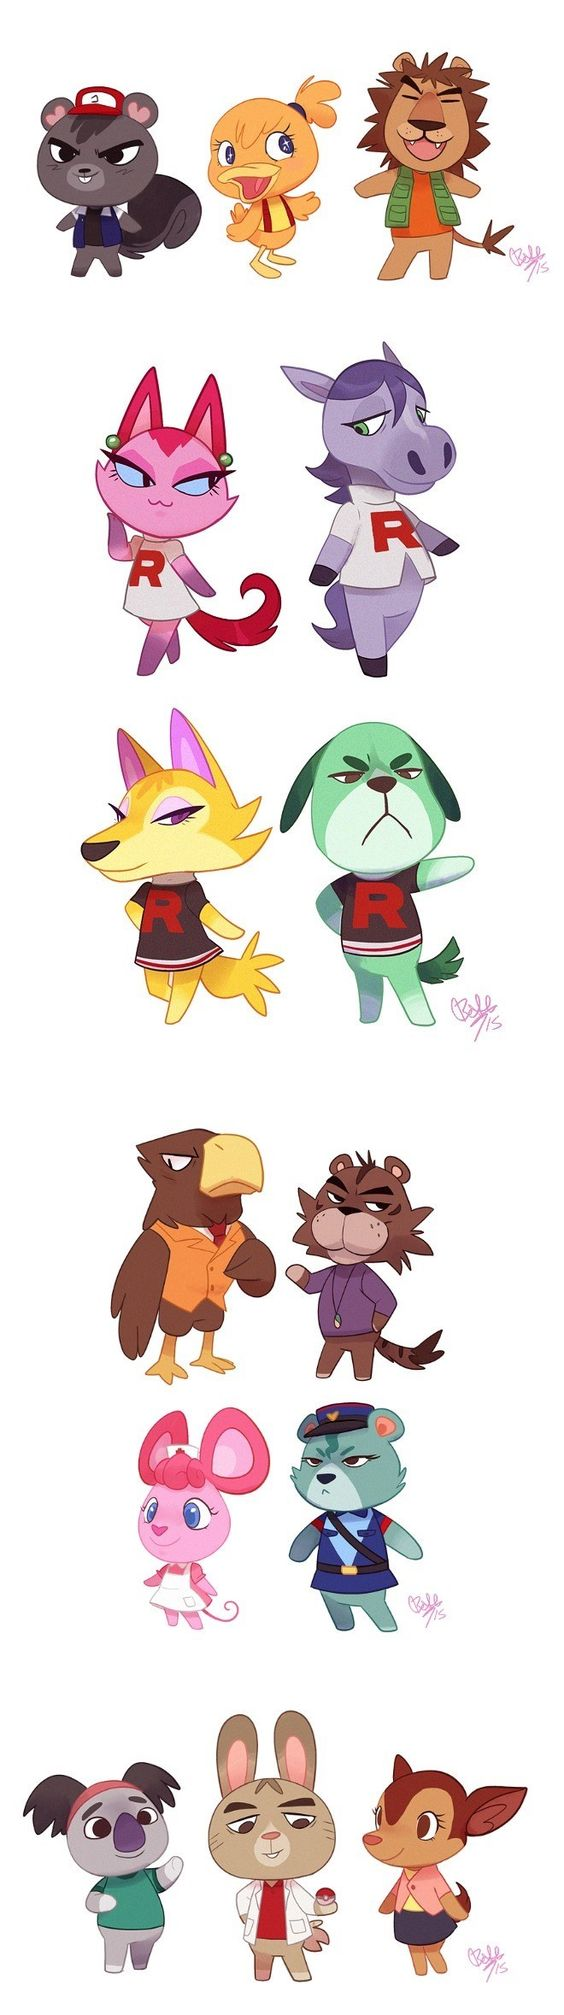 Animals, Animal crossing and So cute on Pinterest